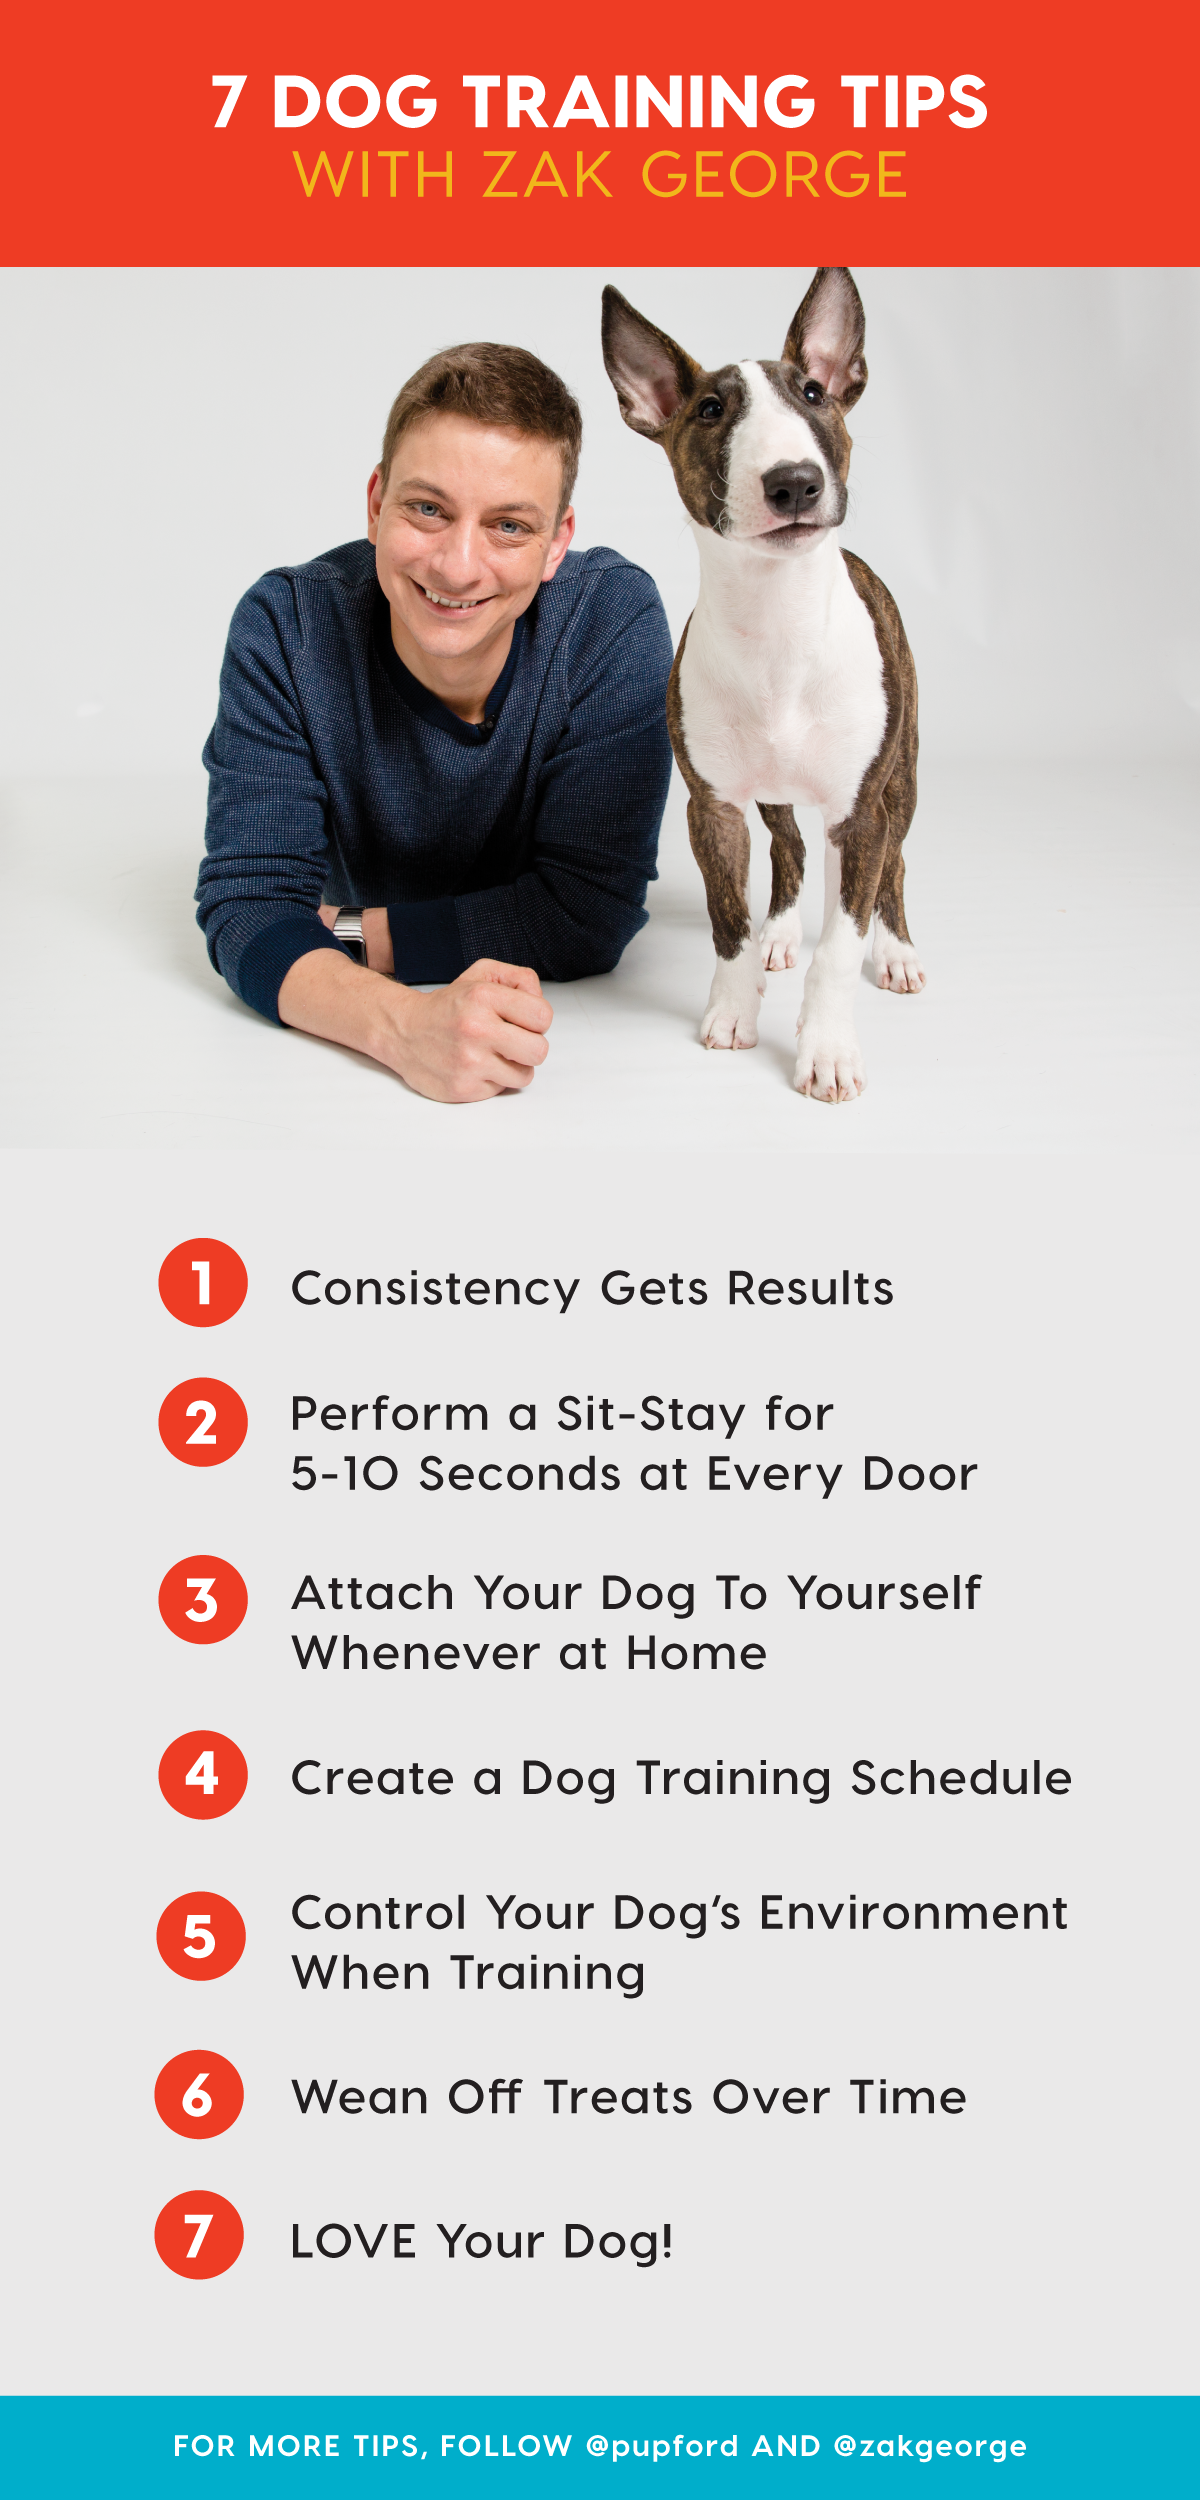 7 Effective Dog Training Tips for Puppies and Adult Dogs